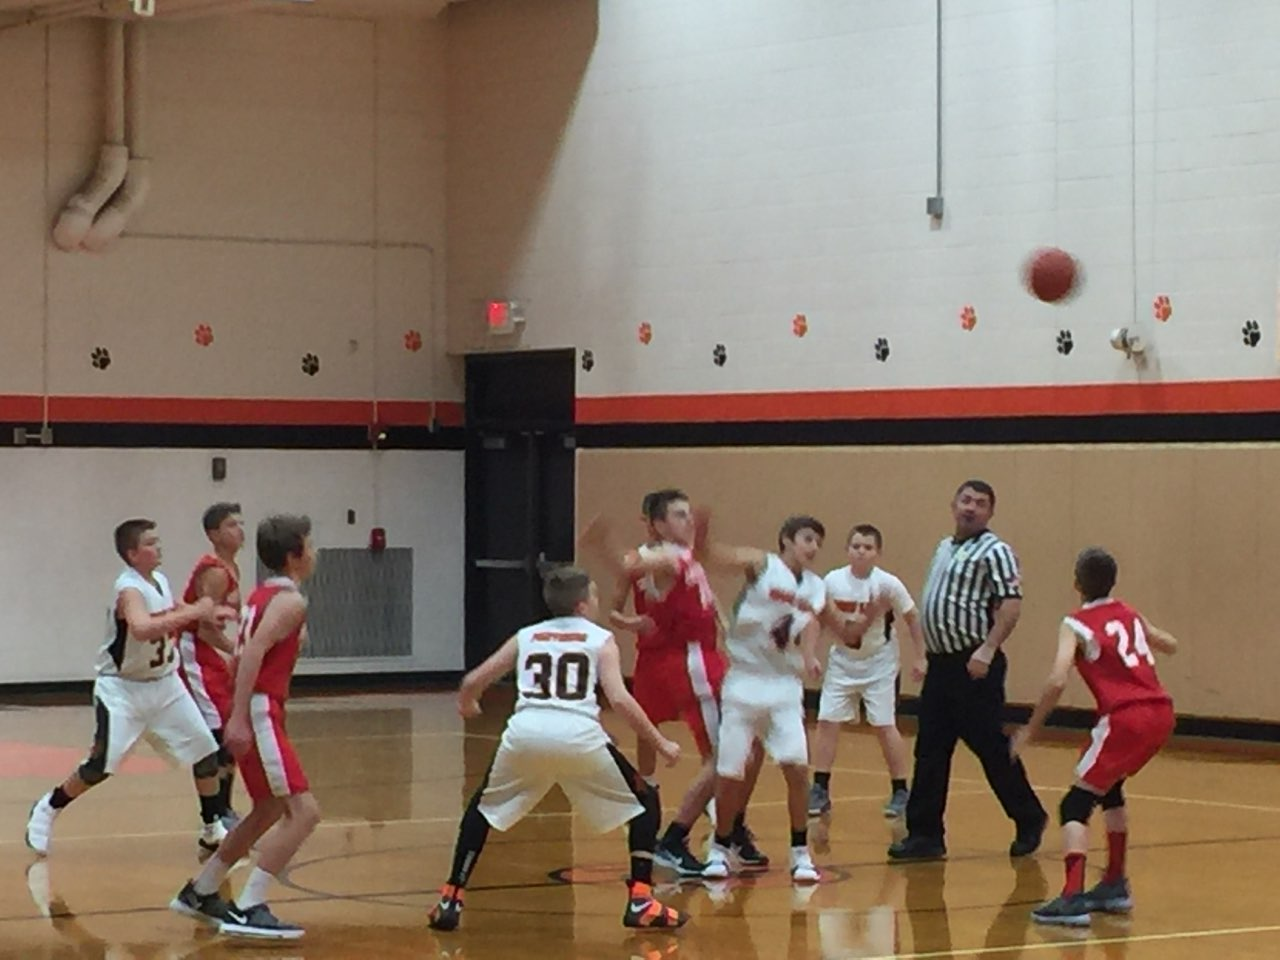 7th grade boys playing against Sheridan.